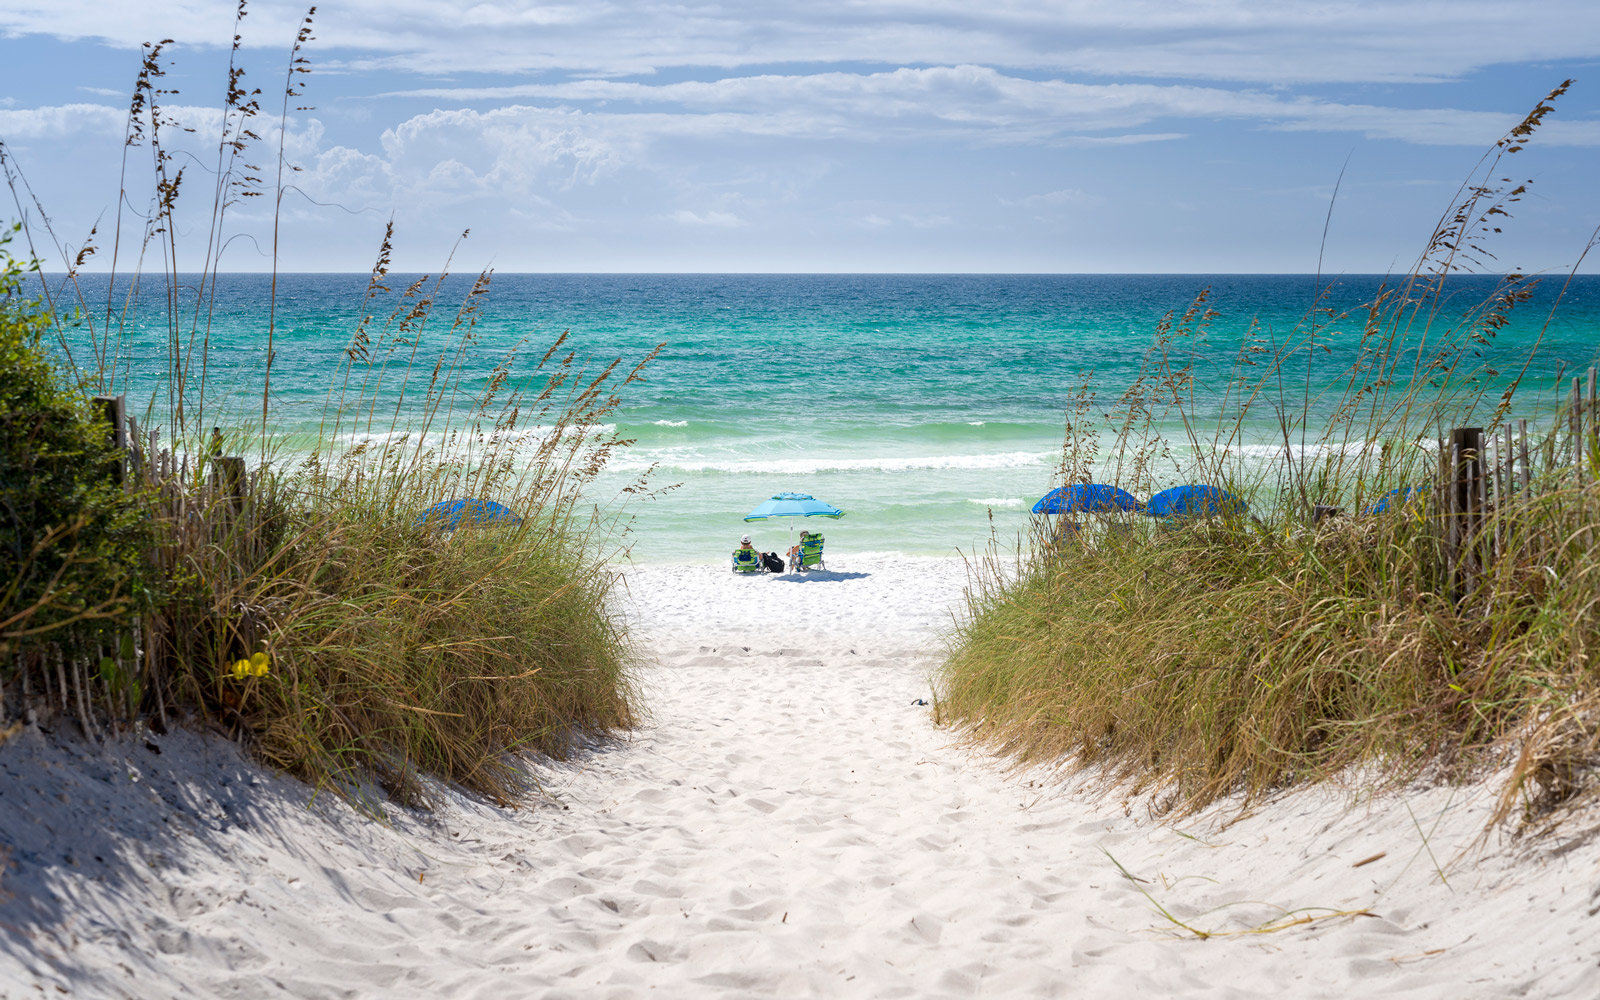 Couple enjoying the turquoise waters of Florida's Emerald Coast